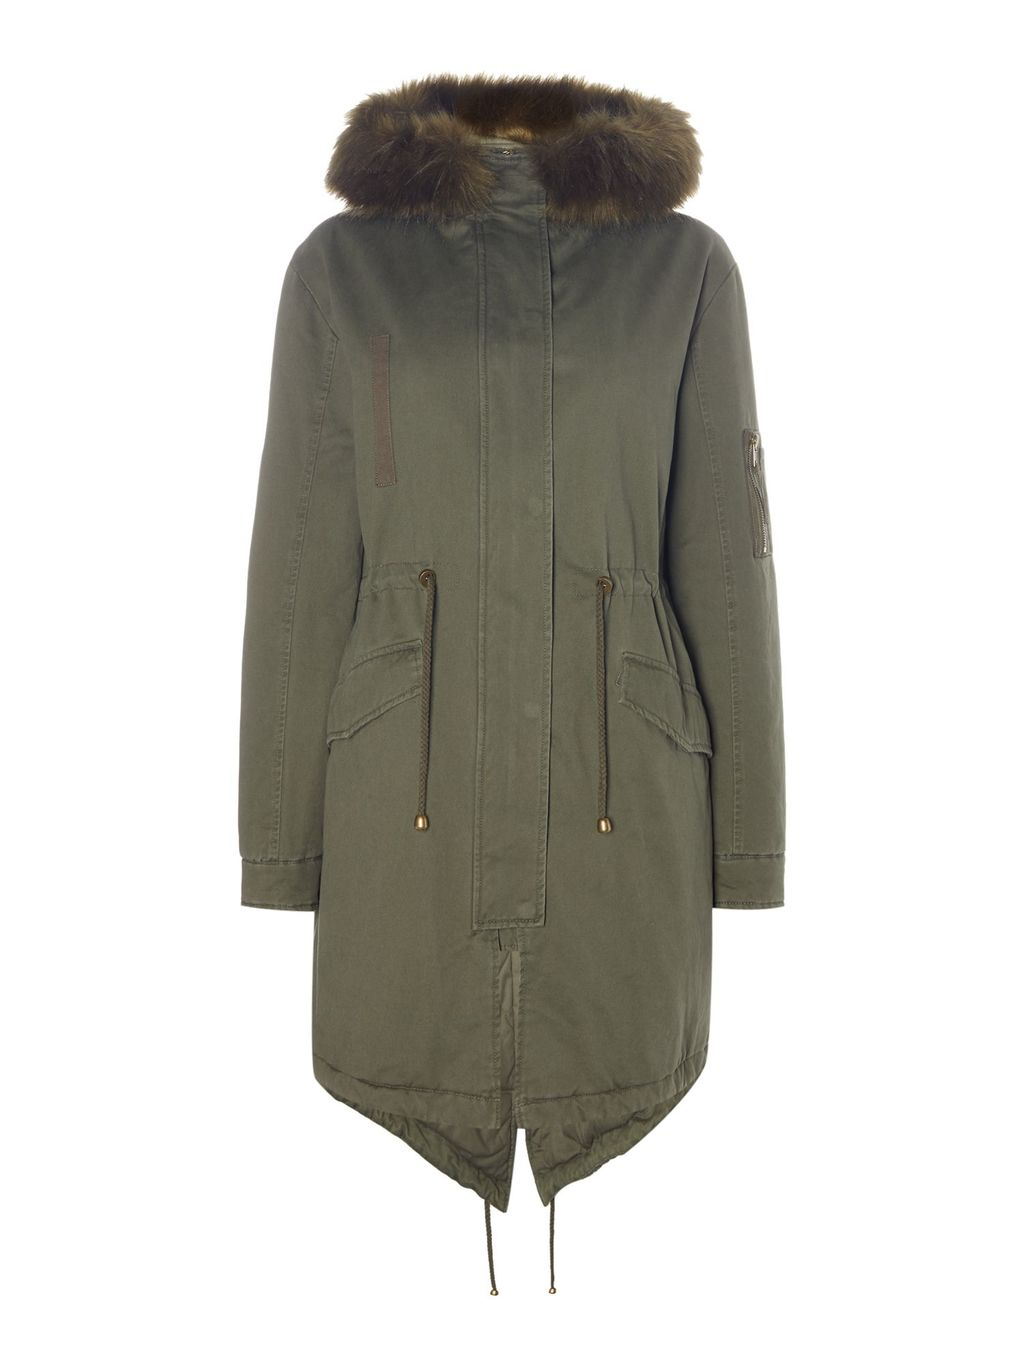 Casual Faux Fur Parka, Khaki - pattern: plain; collar: funnel; fit: loose; style: parka; back detail: hood; length: mid thigh; predominant colour: khaki; occasions: casual; fibres: cotton - 100%; waist detail: belted waist/tie at waist/drawstring; sleeve length: long sleeve; sleeve style: standard; texture group: technical outdoor fabrics; collar break: high; pattern type: fabric; embellishment: fur; season: a/w 2016; wardrobe: highlight